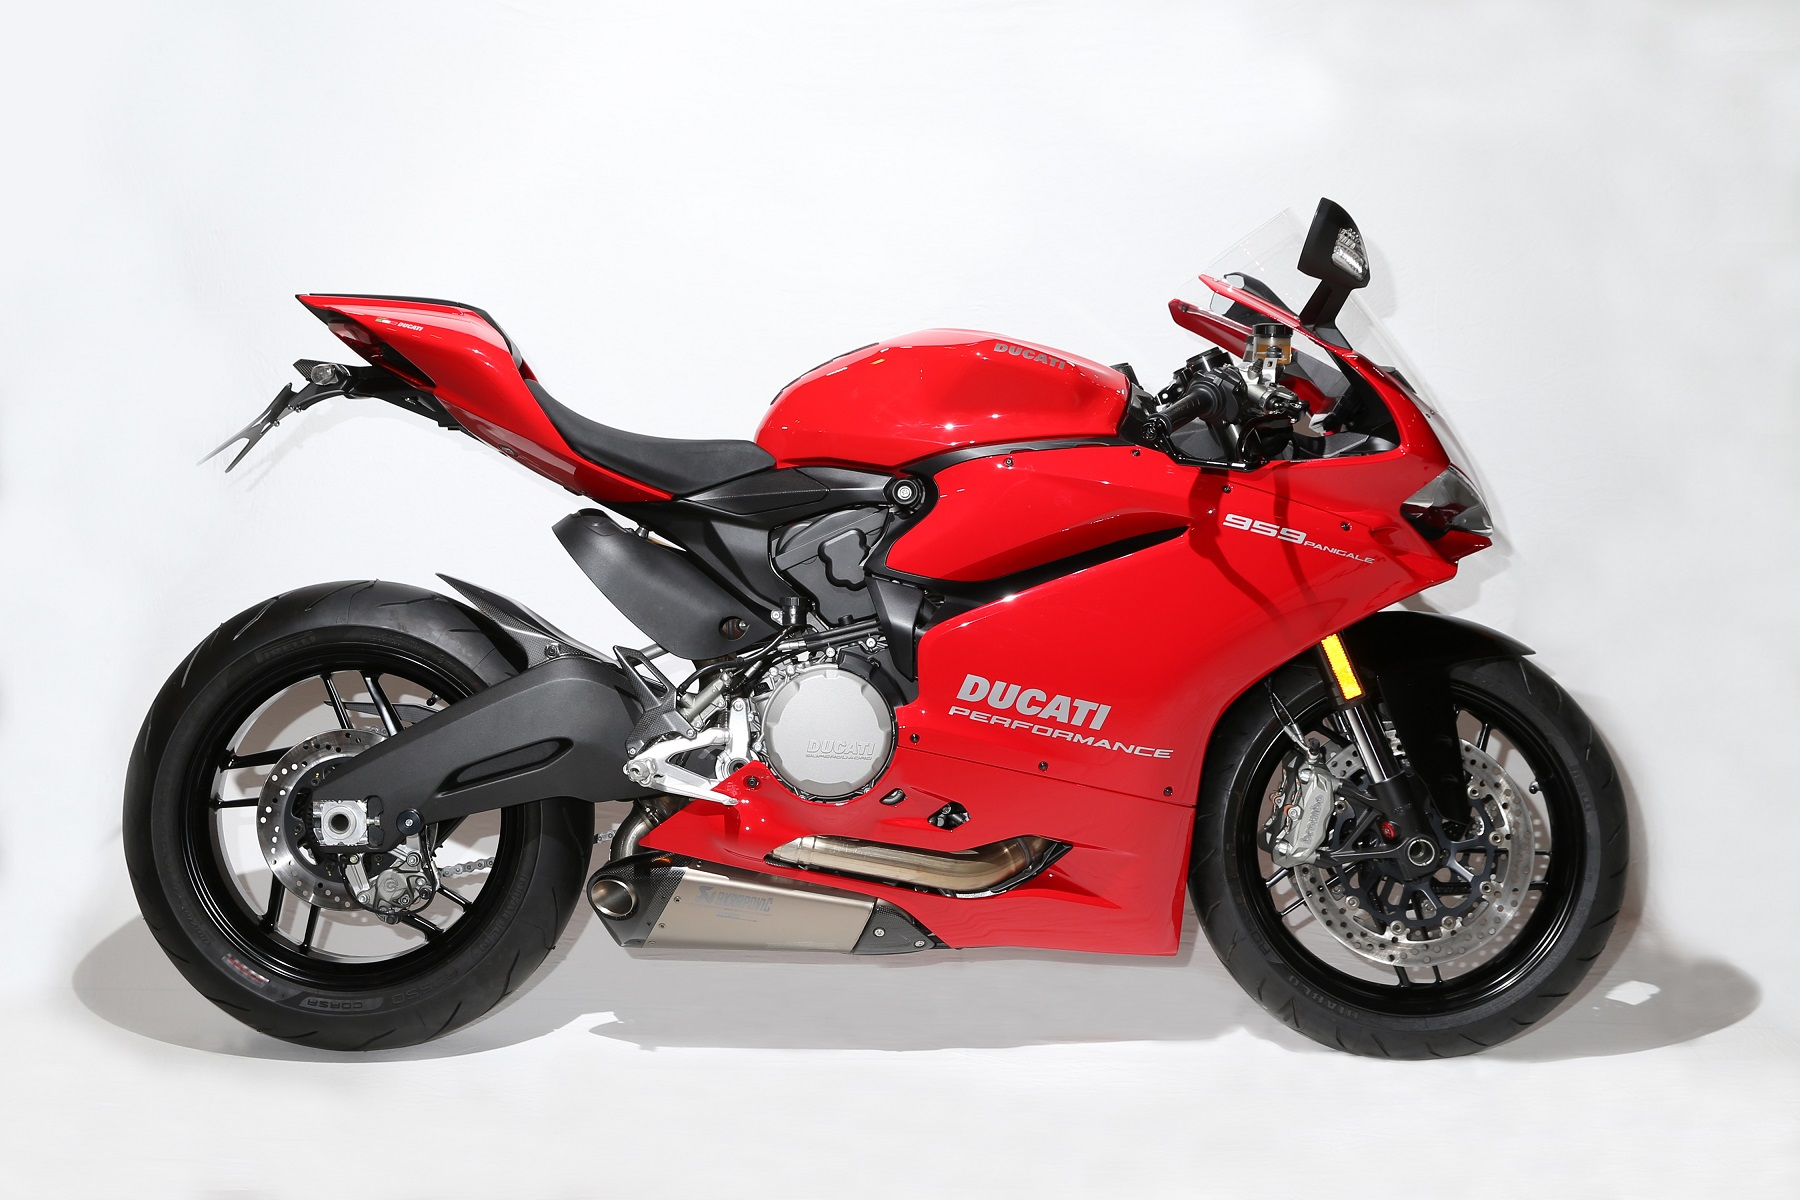 Ducati Panigale 959 special edition